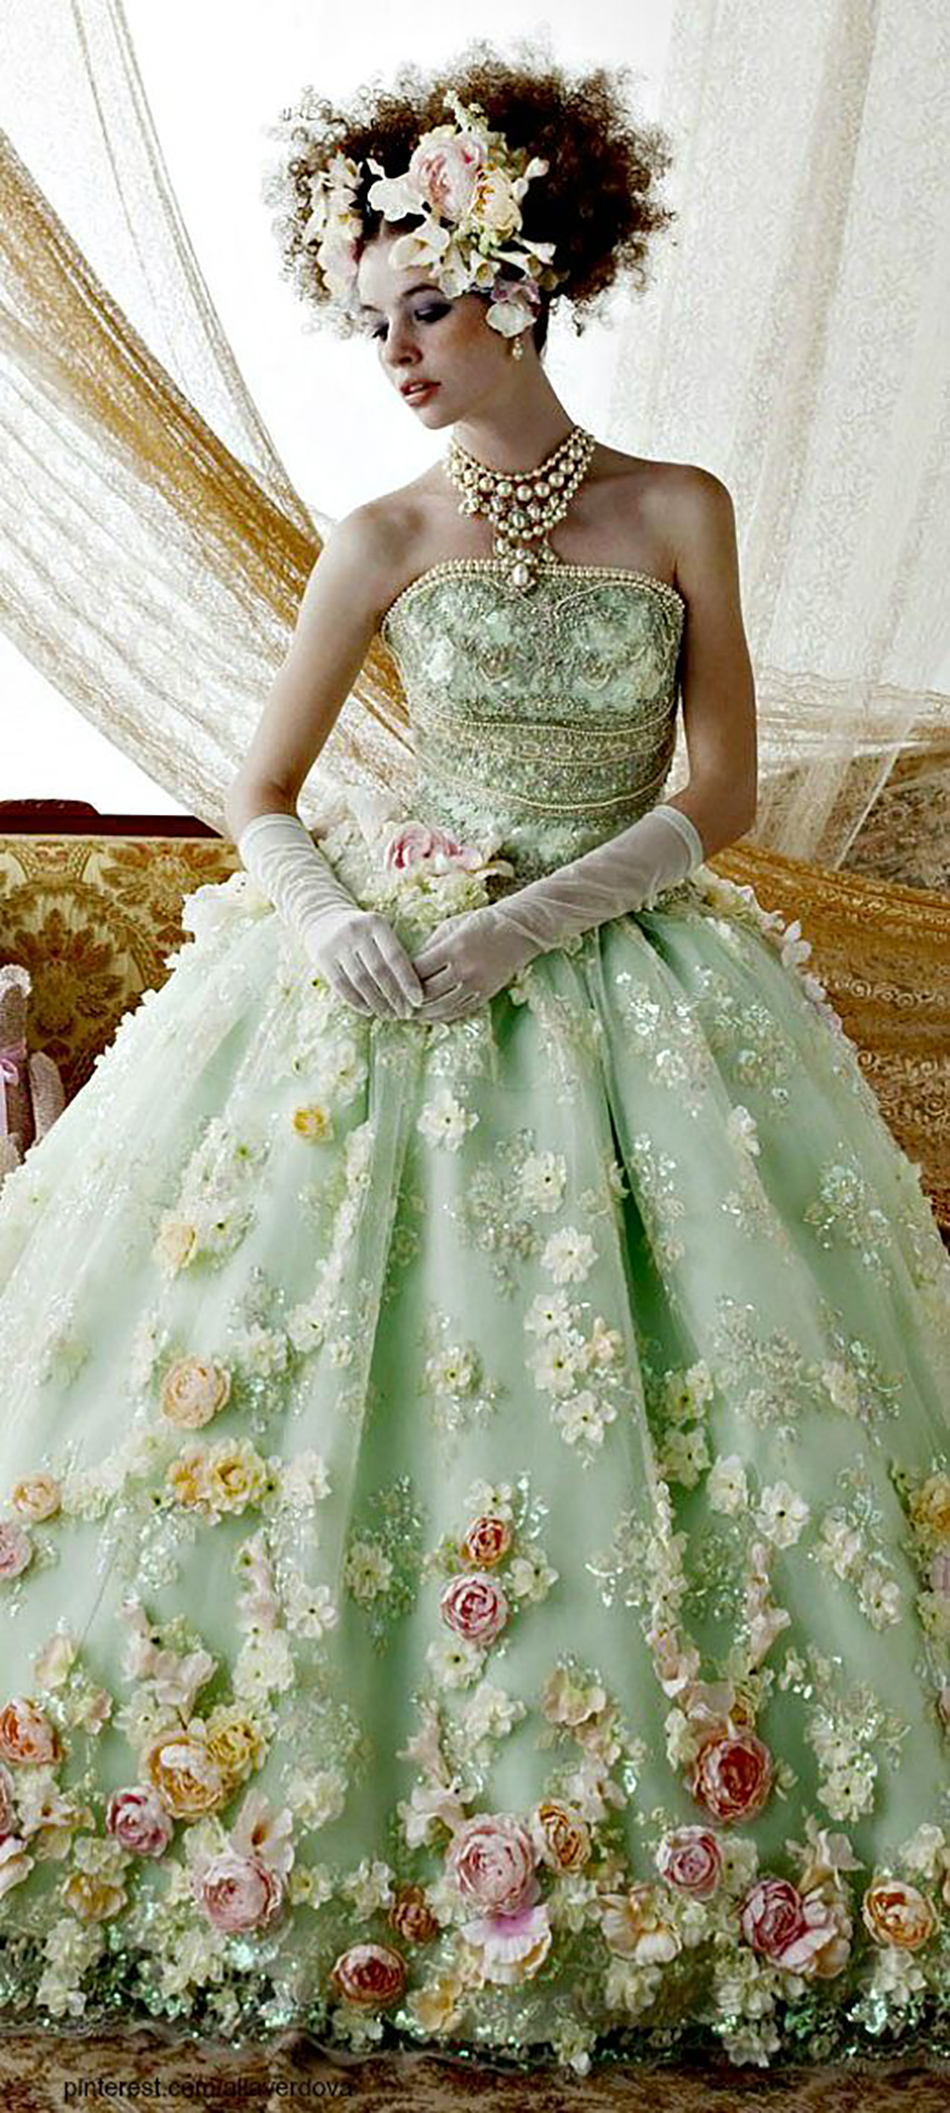 Bridal Gowns With Flowers : Green wedding dresses chwv